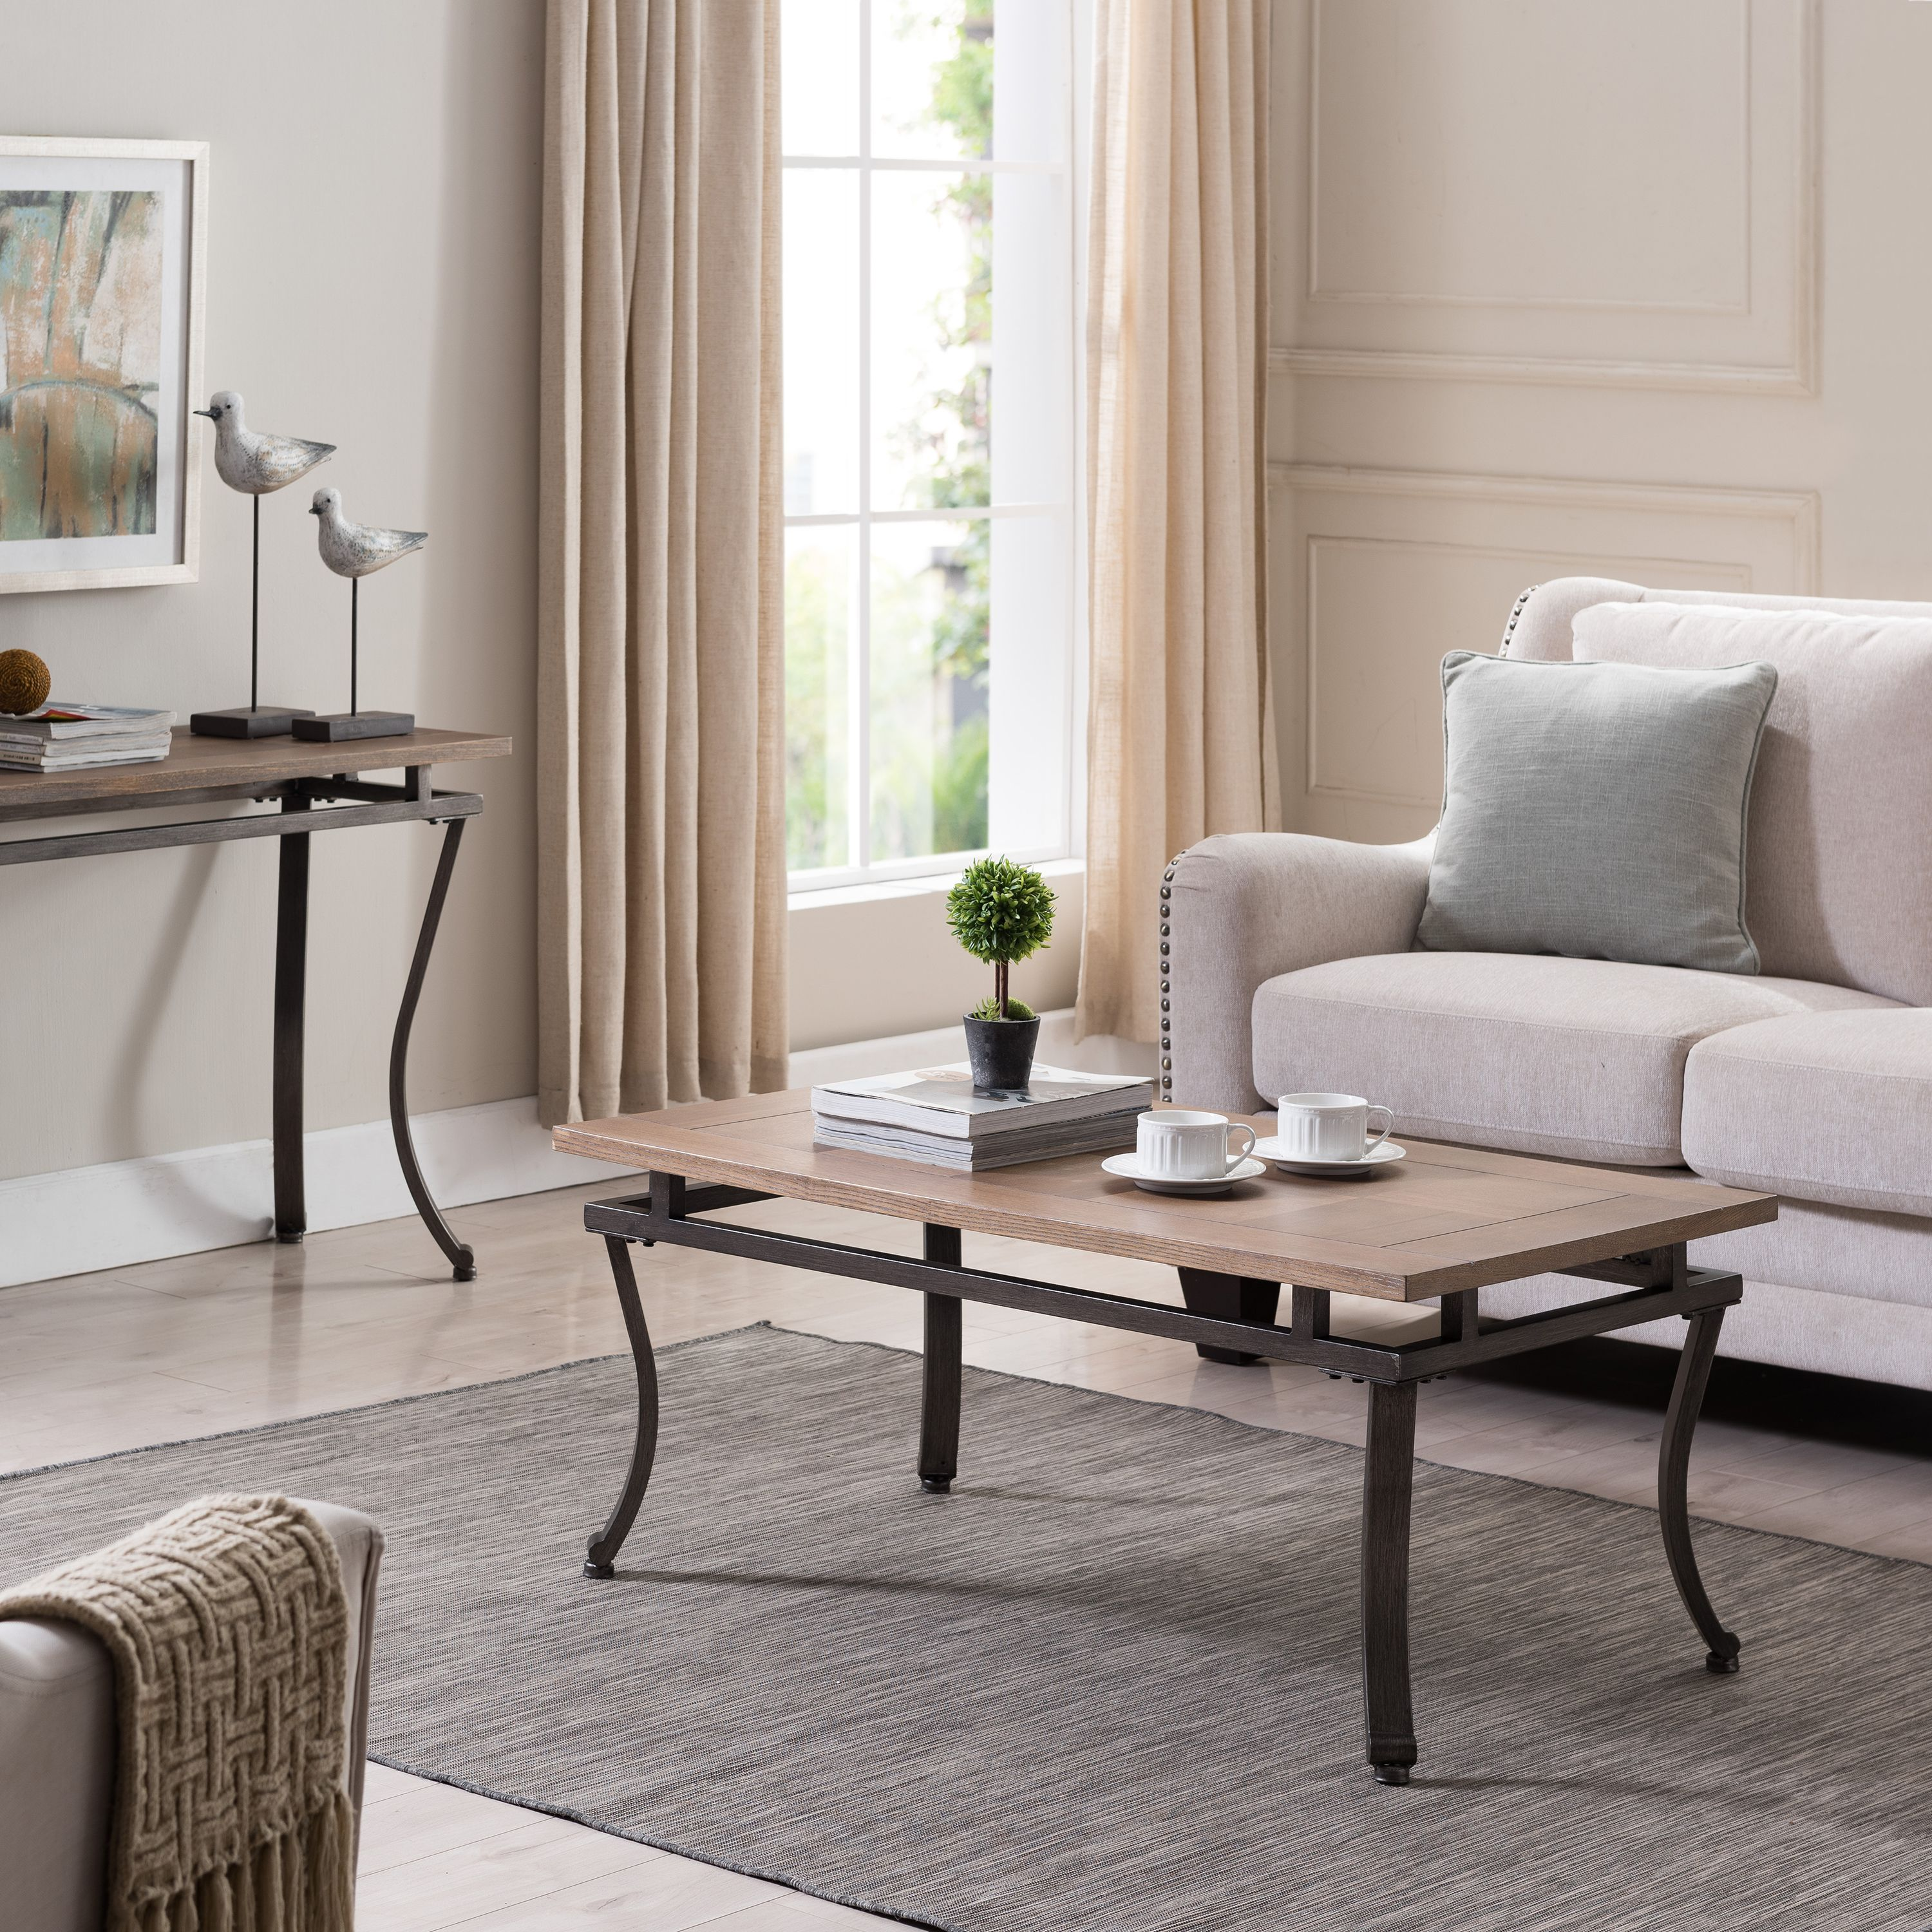 Southern Enterprises Eclipso Cocktail Table, Transitional Style, Natural w/ Gunmetal Gray